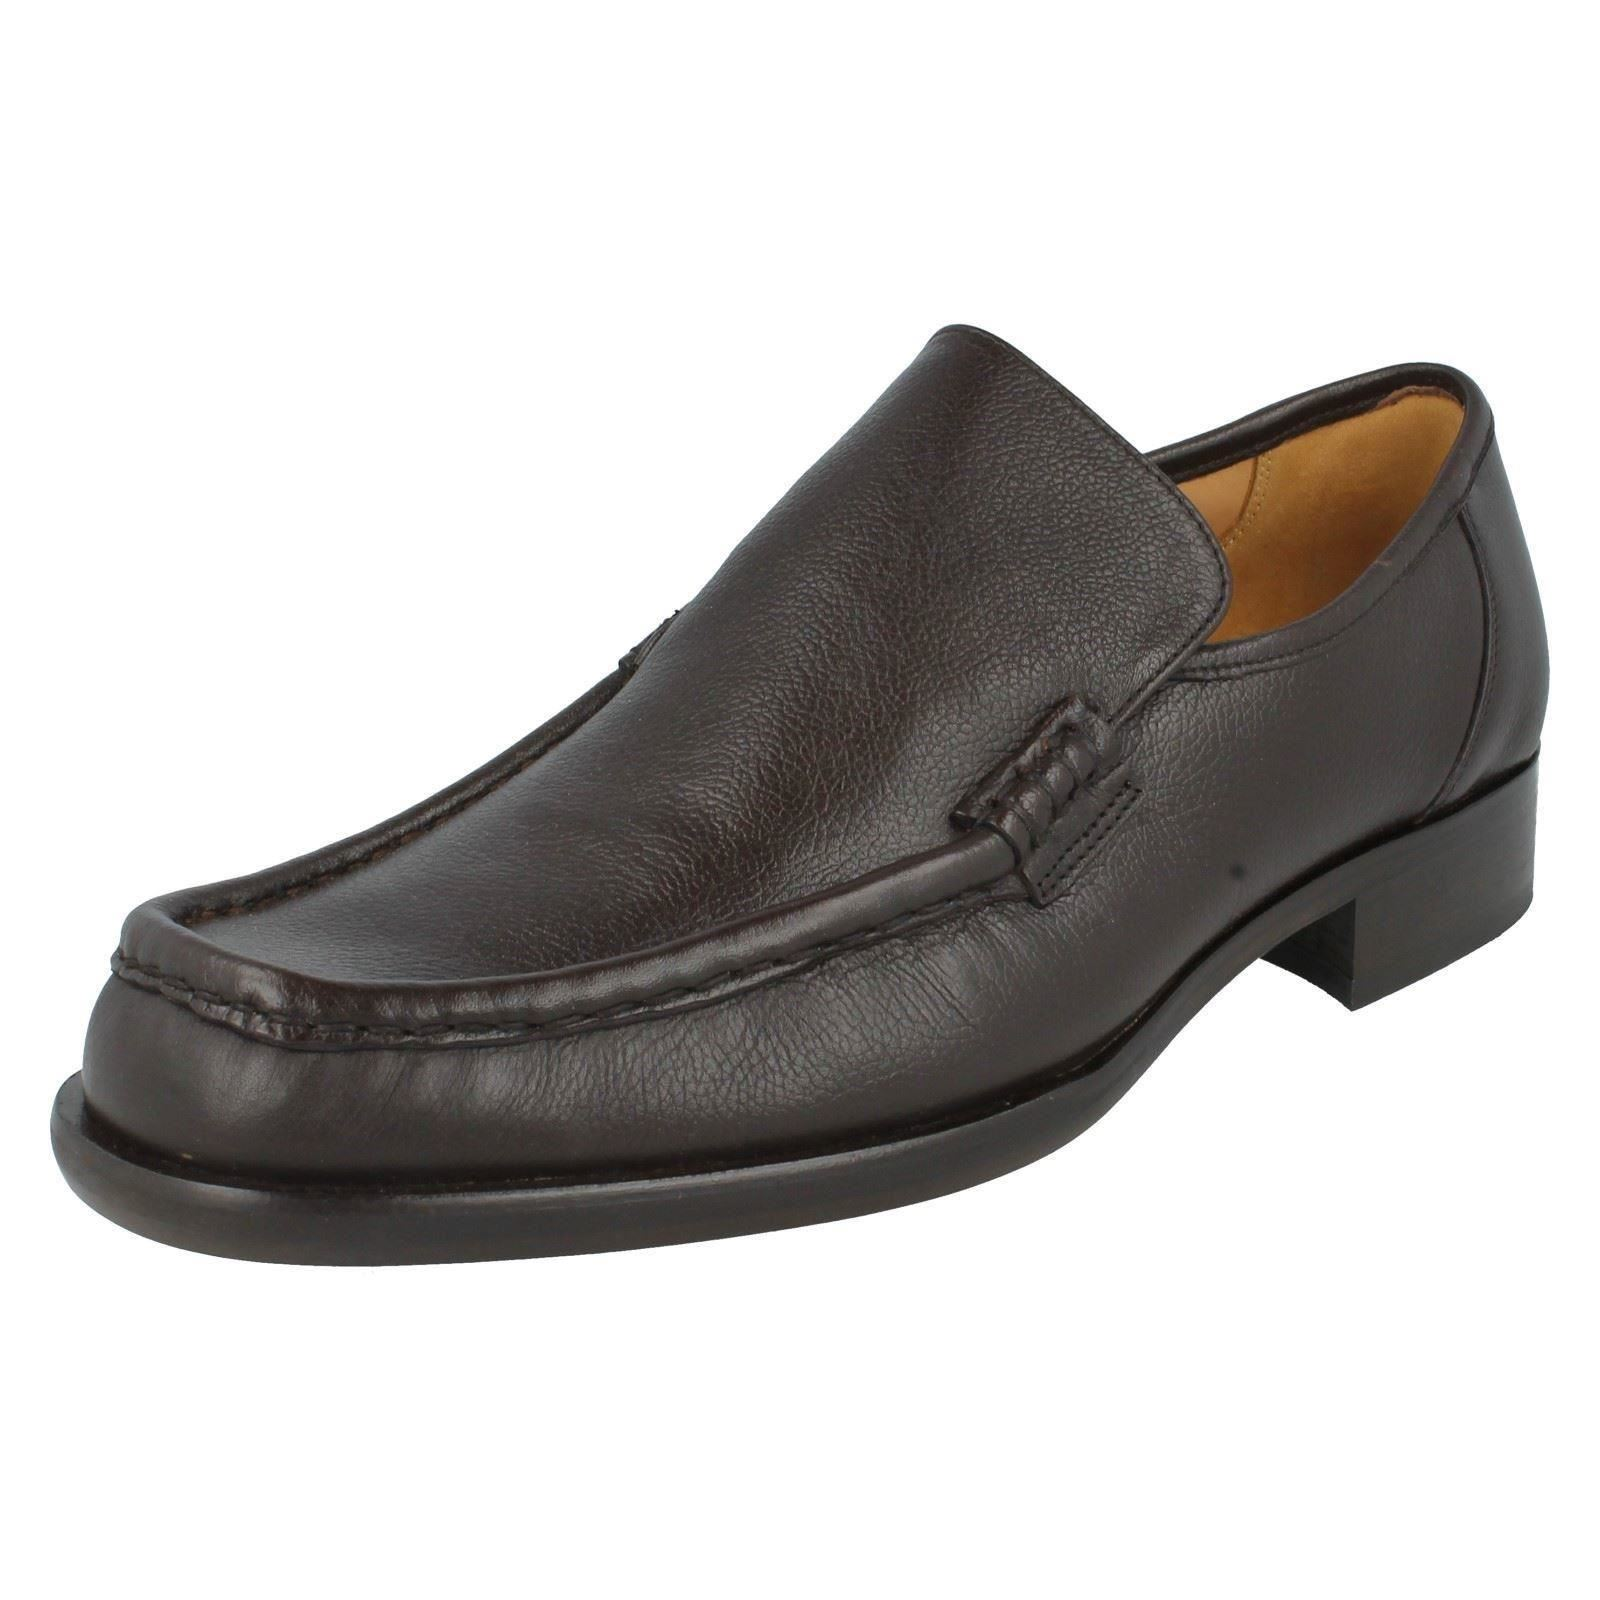 Uomo Grenson Formal Slip On Label Moccasin Schuhes Fitting F Label On - Dean 9637 fa767f